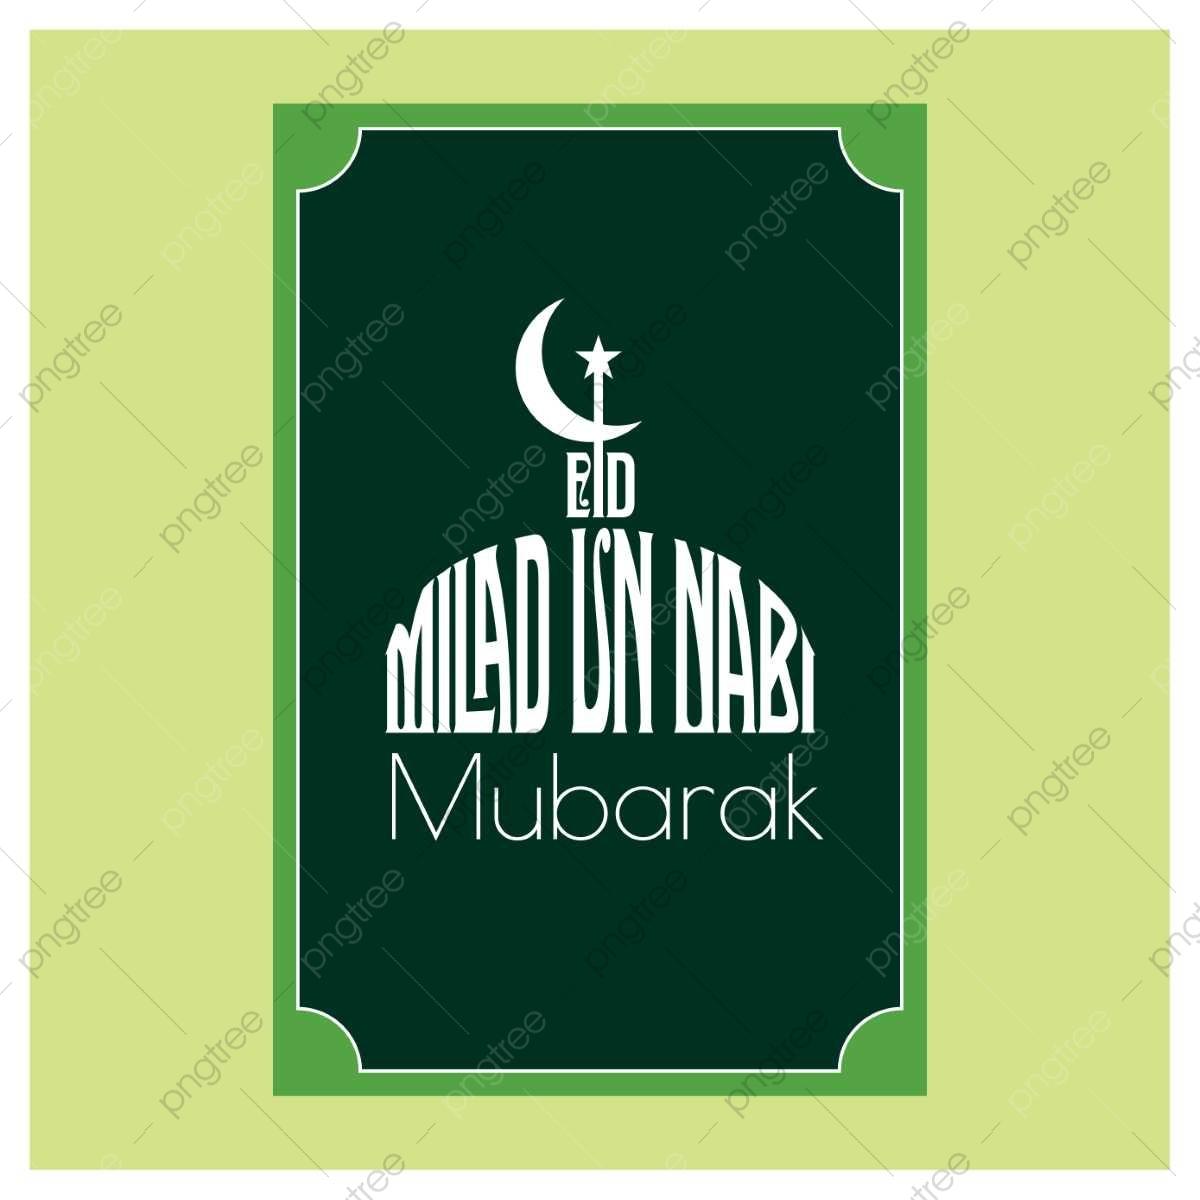 eid milad un nabi mubarak design card vector card icons un iconse eid png and vector with transparent background for free download https pngtree com freepng eid milad un nabi mubarak design card vector 3573374 html